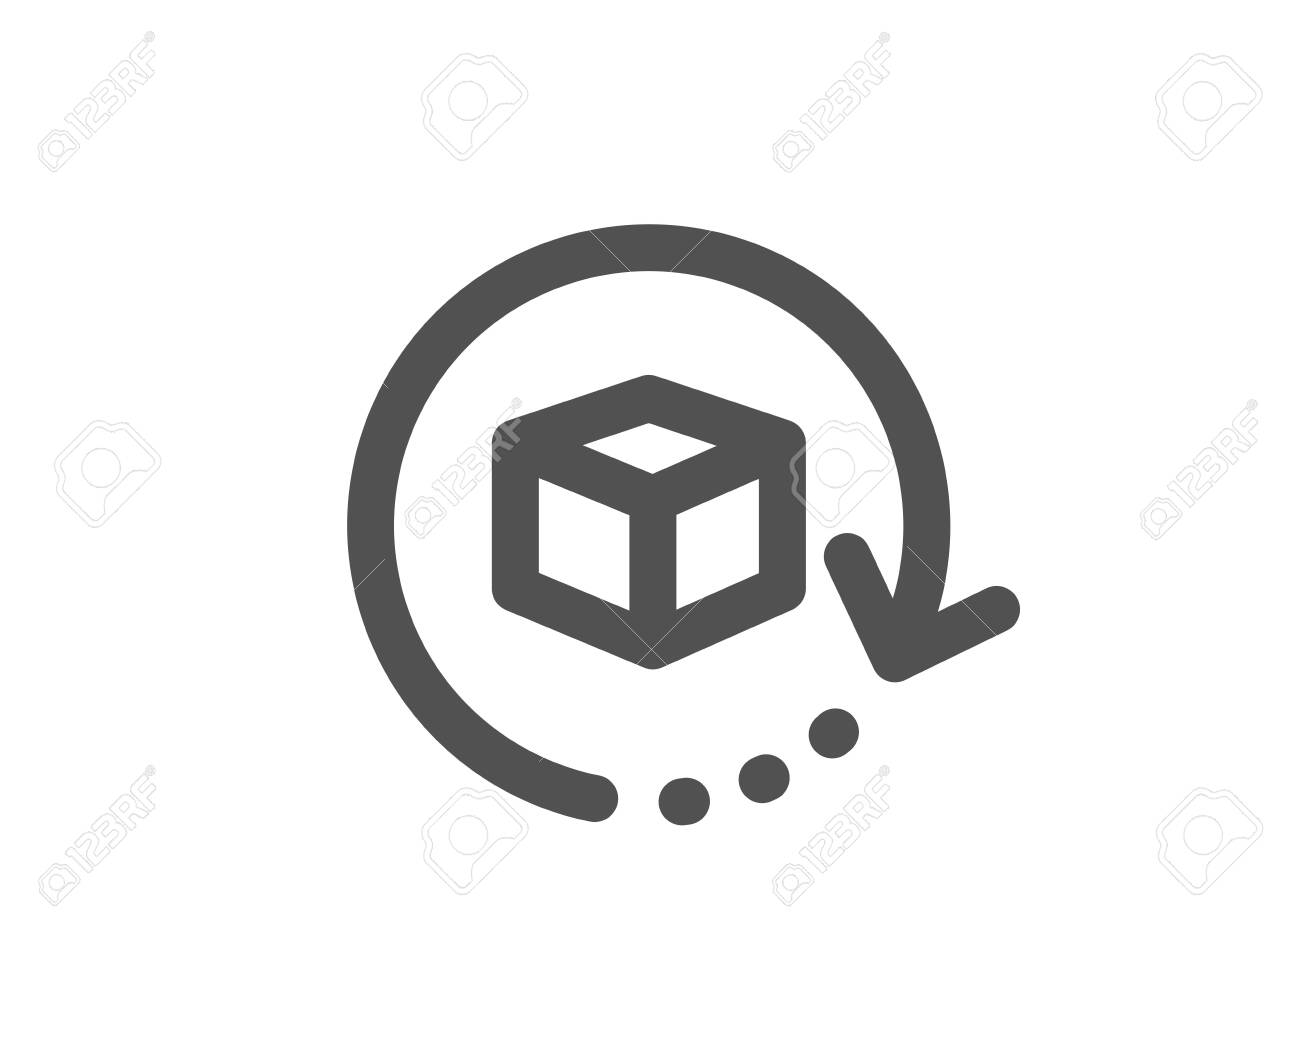 Delivery parcel sign. Return package icon. Cargo goods box symbol. Classic flat style. Simple return package icon. Vector - 130390049